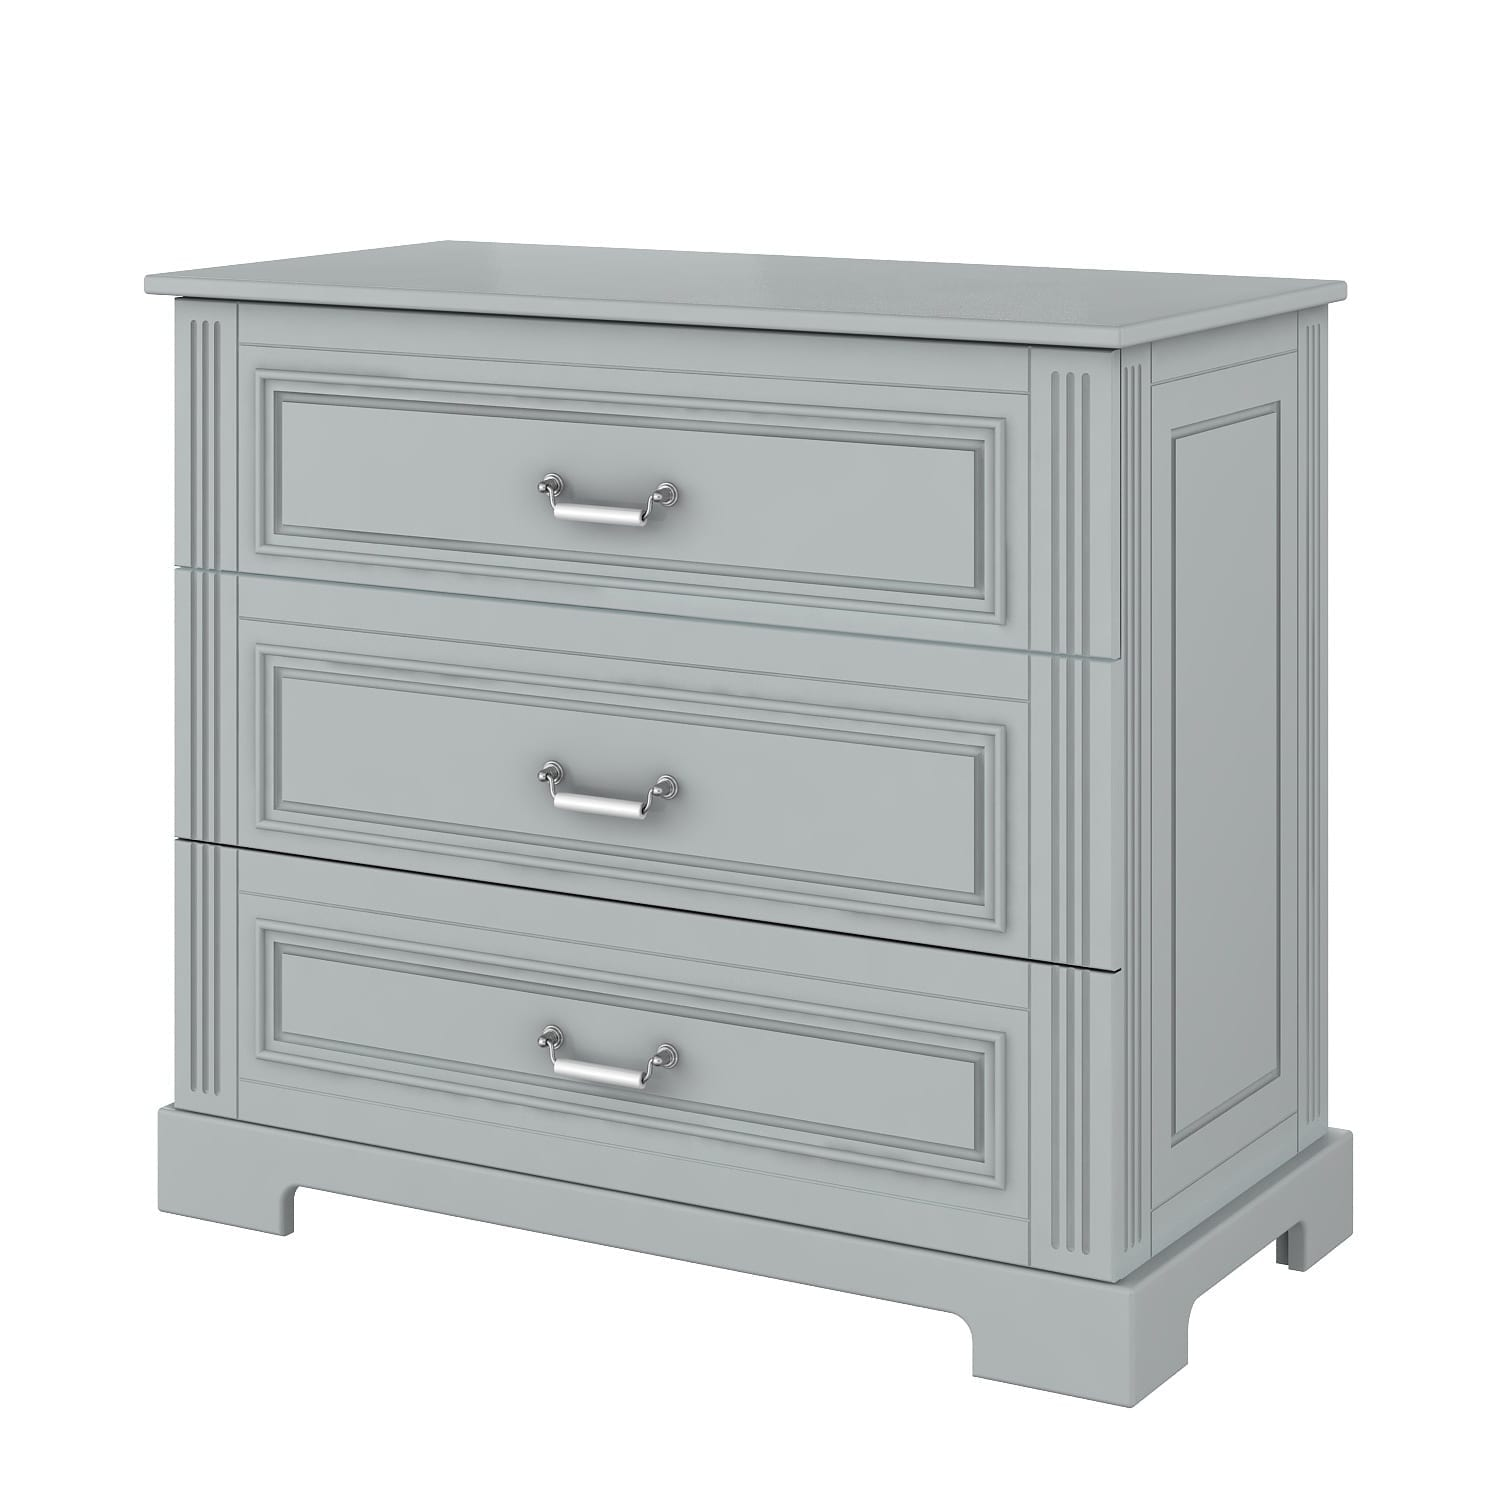 Ines Chest of Drawers – Grey product image